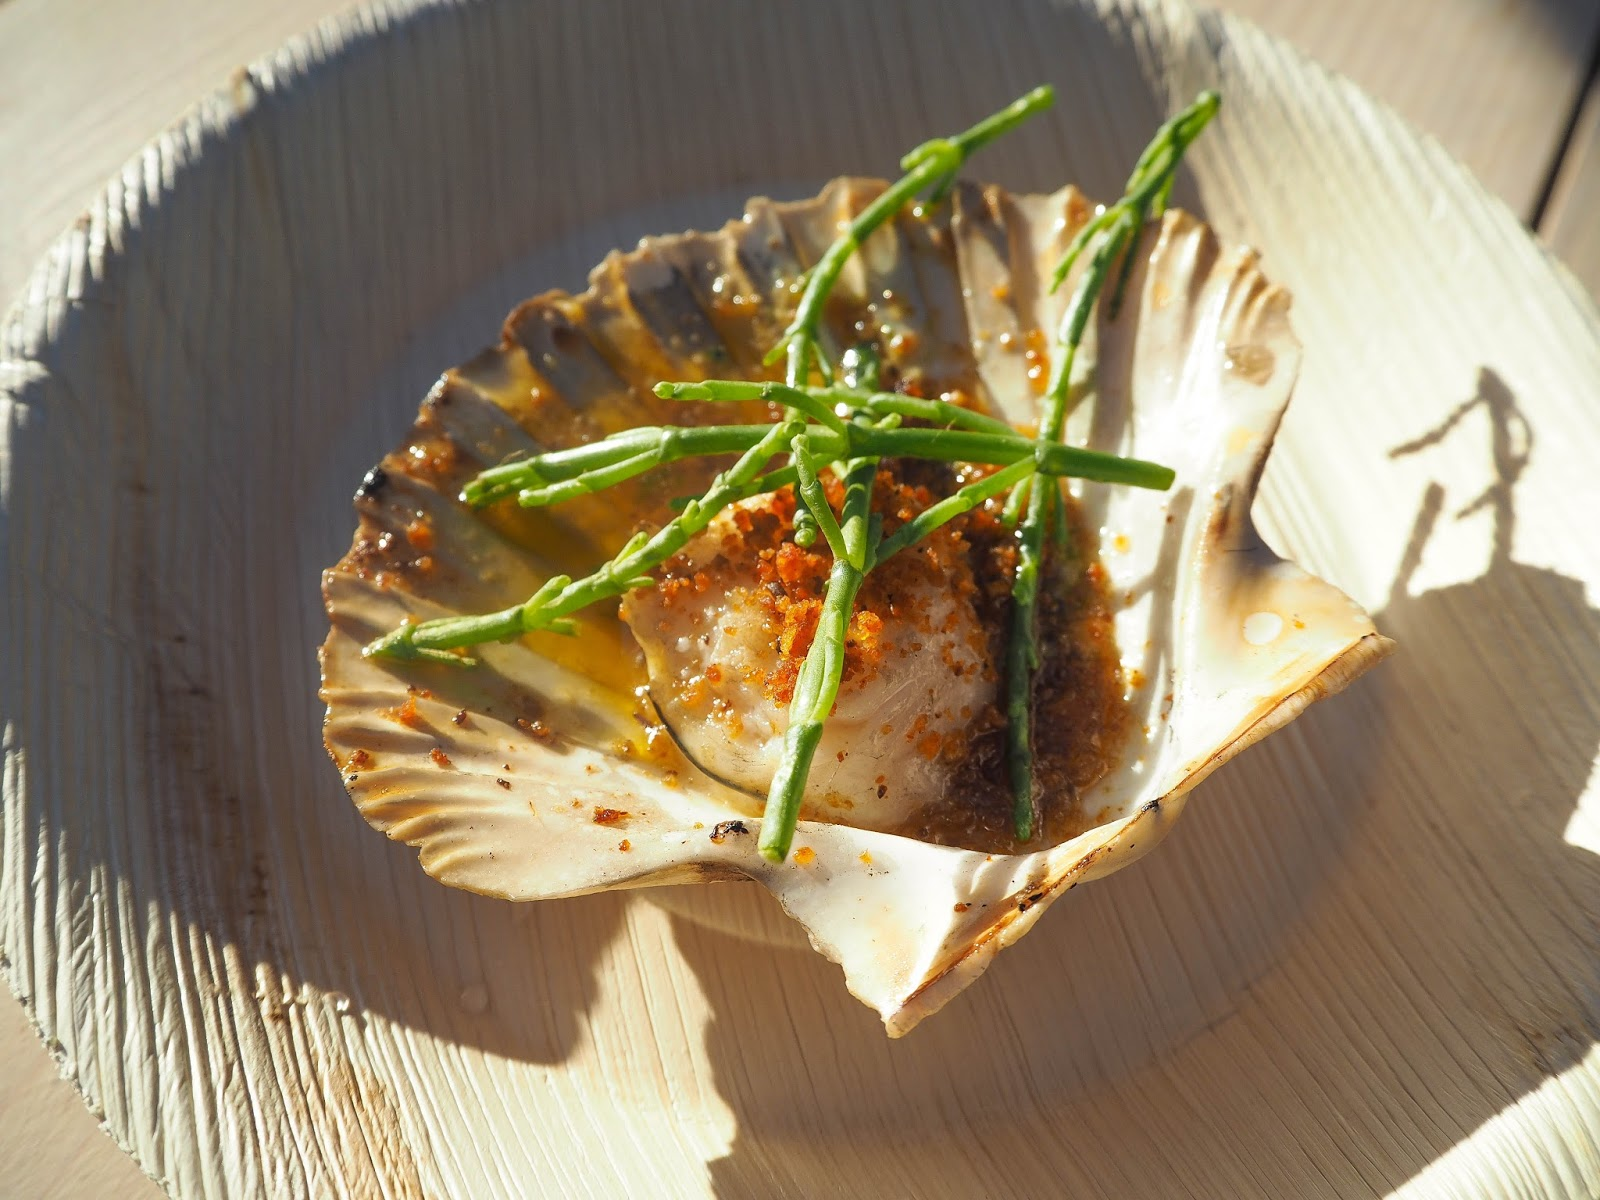 Scallop from Rabbit pop-up, Pergola on the Roof